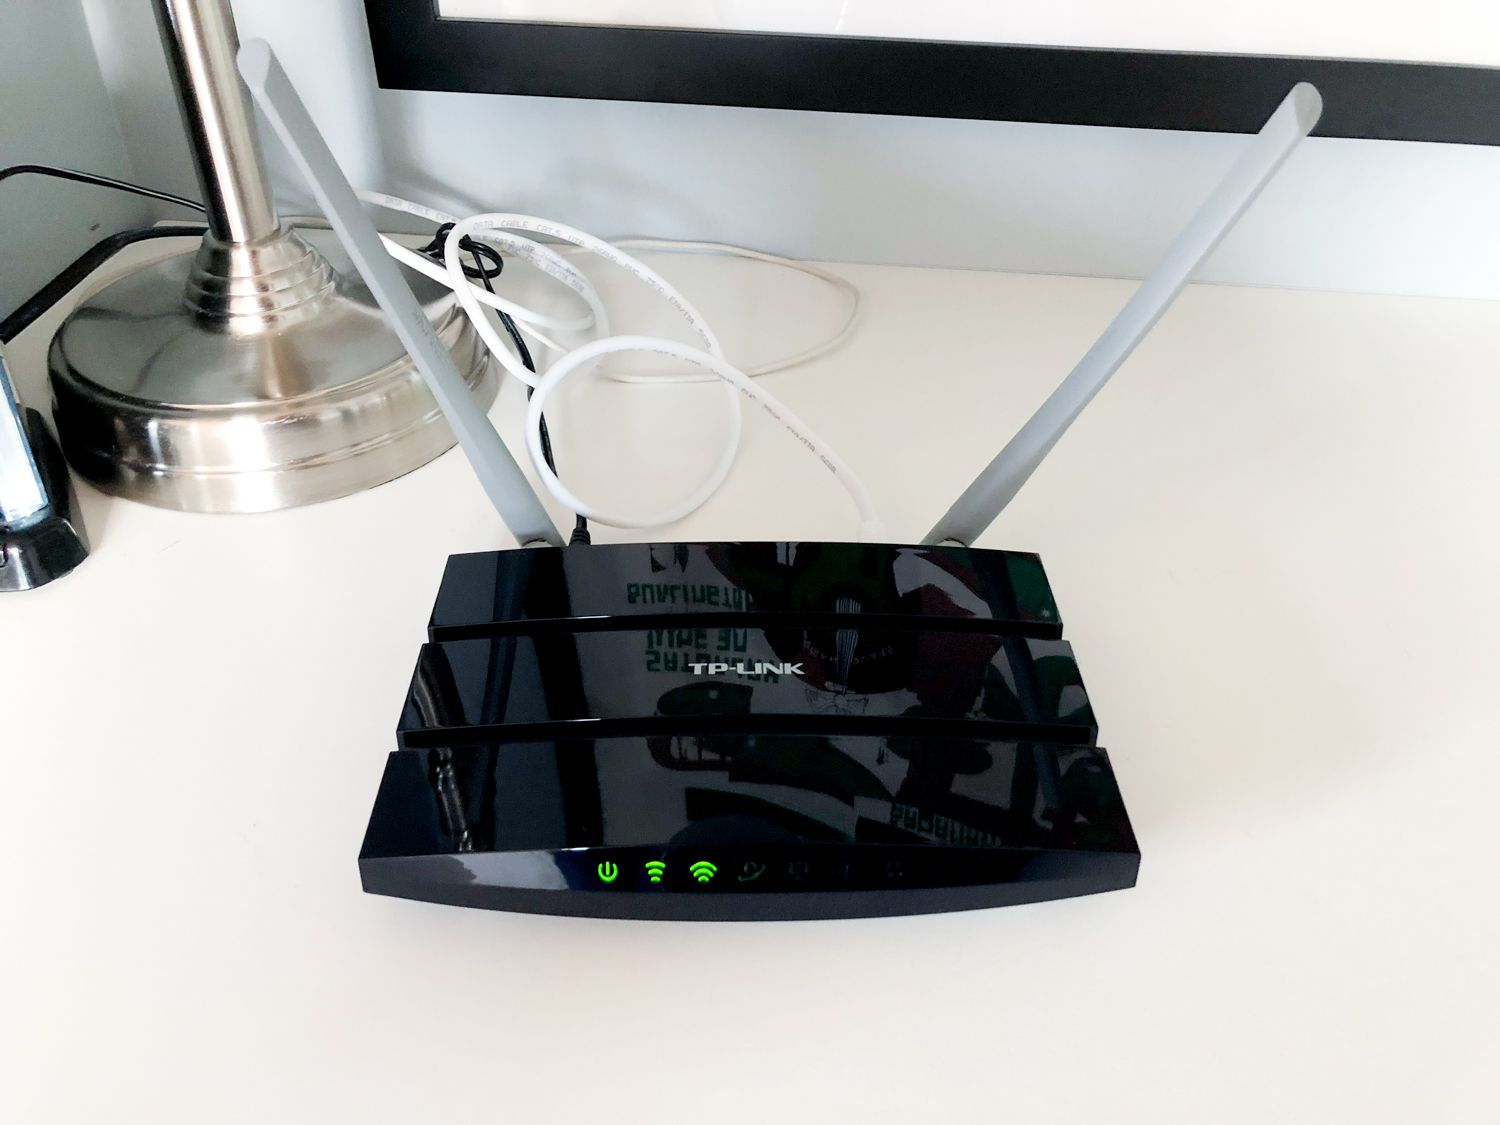 The 10 Best Wireless Routers To Buy In 2018